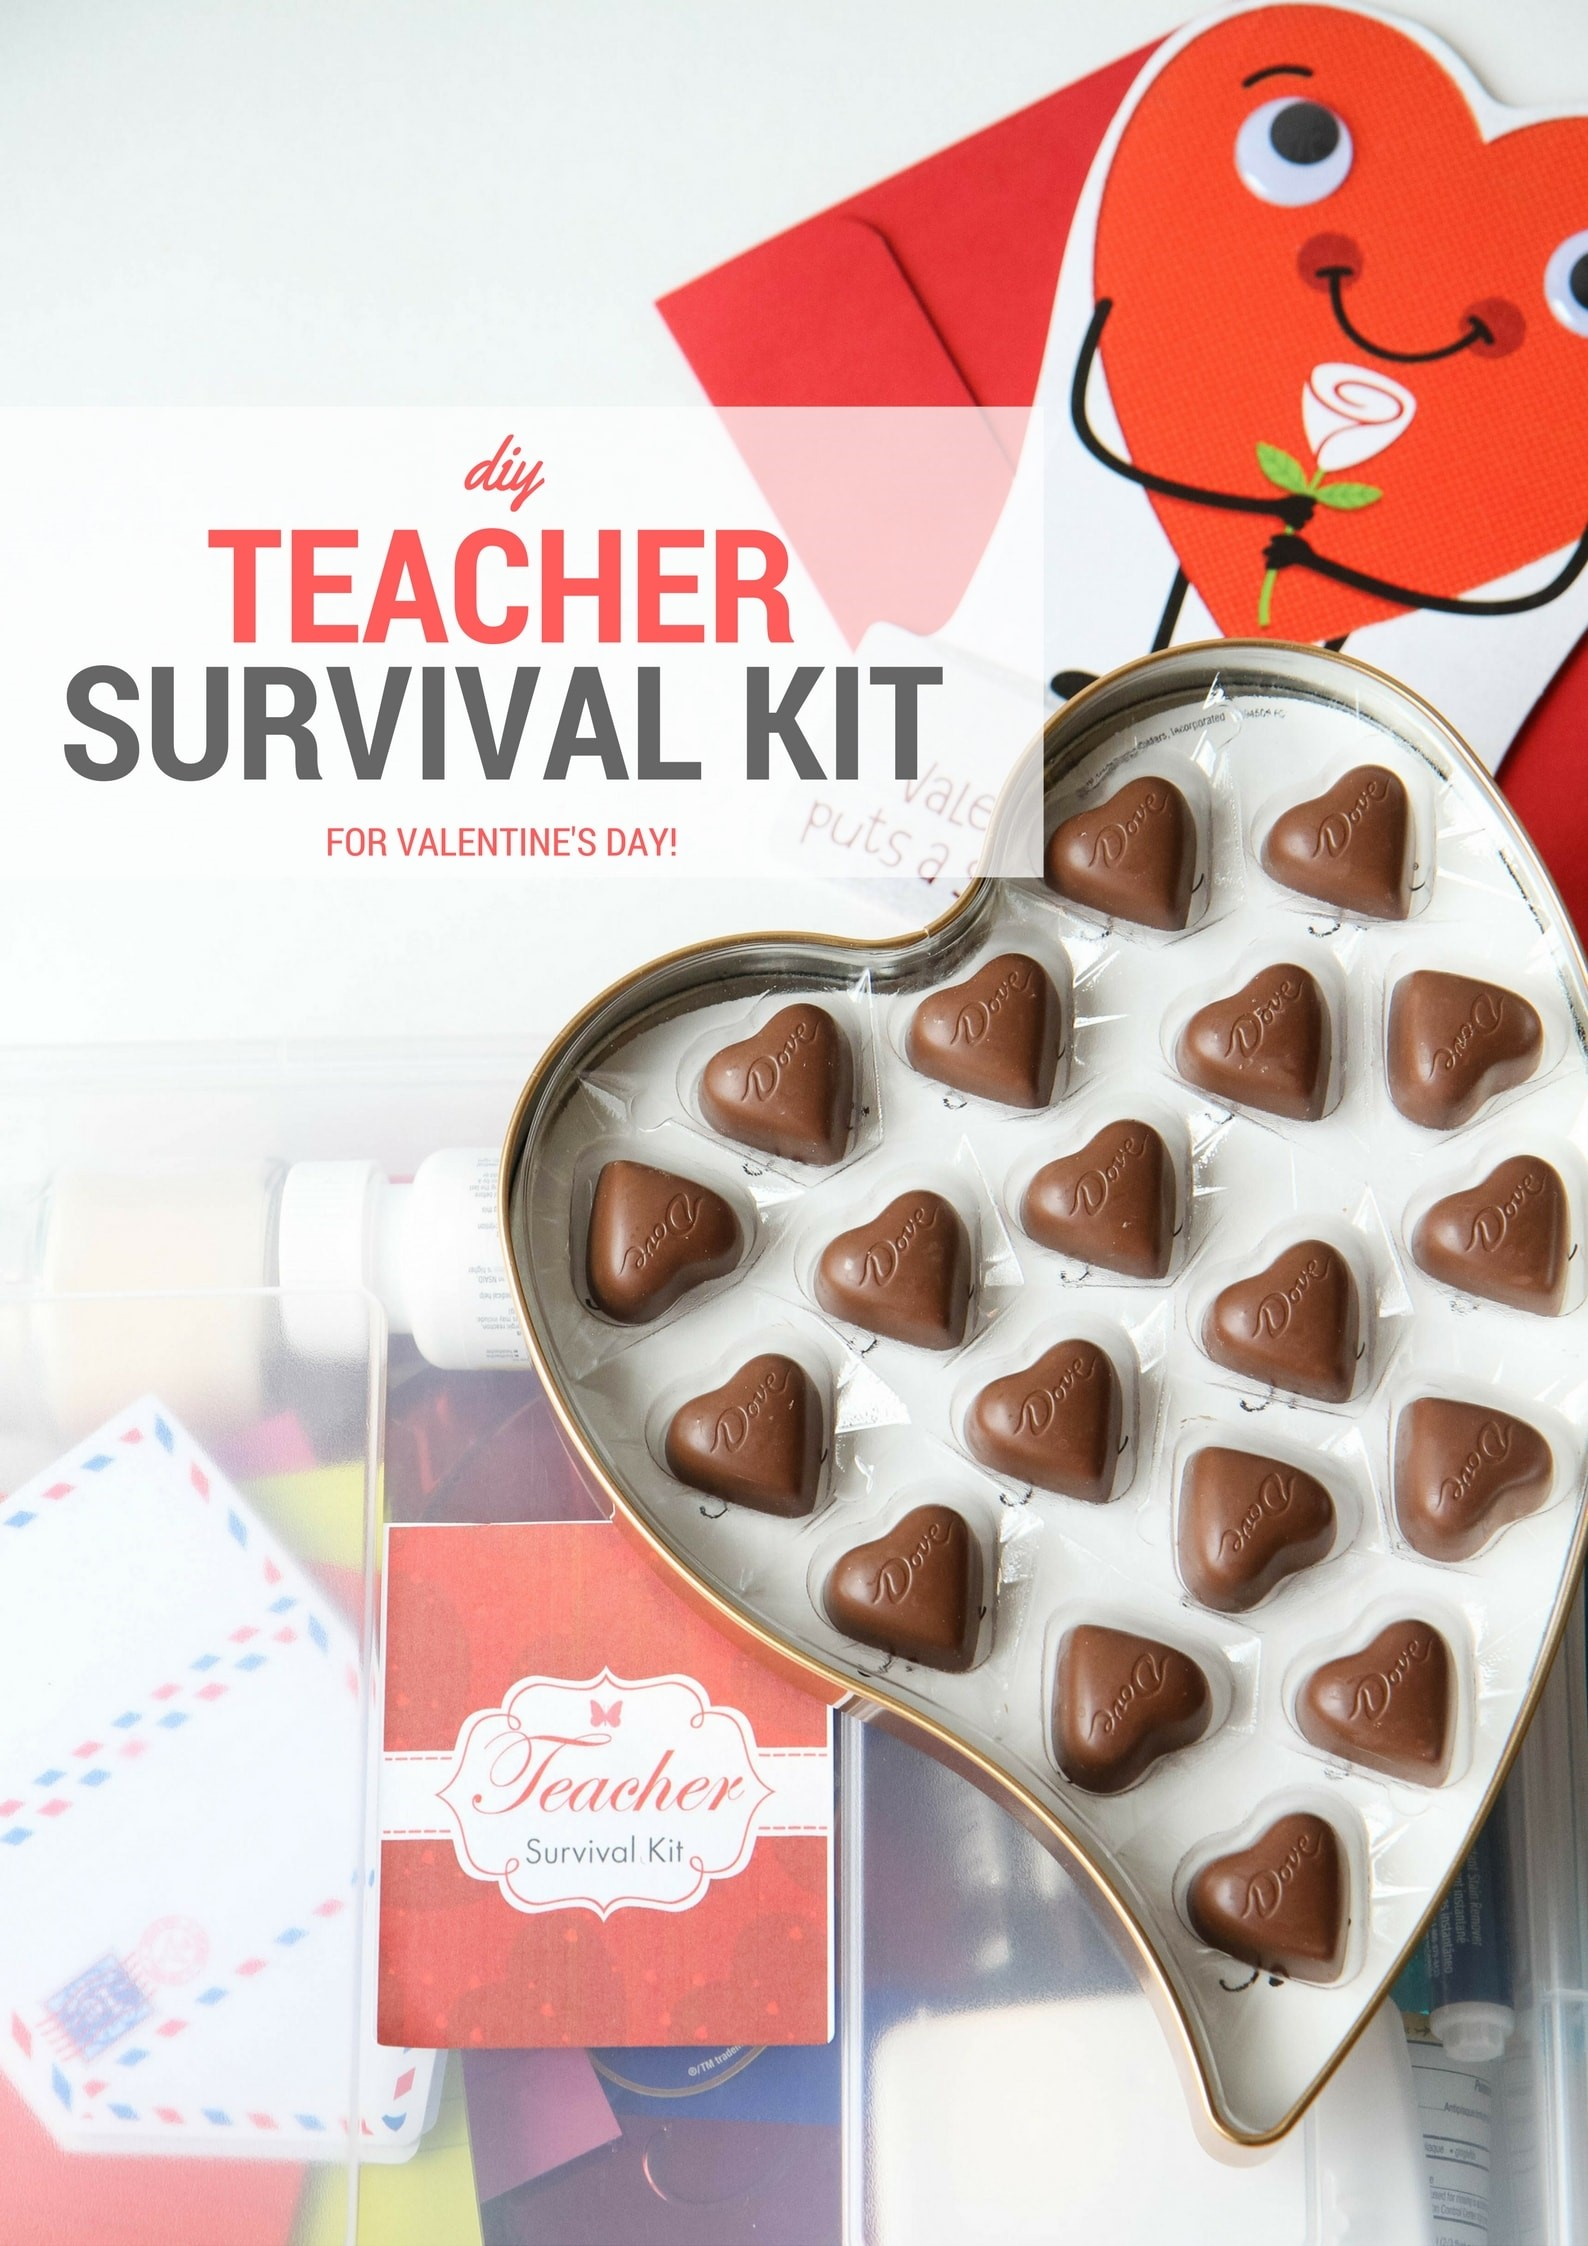 image regarding Teacher Survival Kit Printable named Do-it-yourself Instructor Survival Package Present (Cost-free Printable!) - MomAdvice